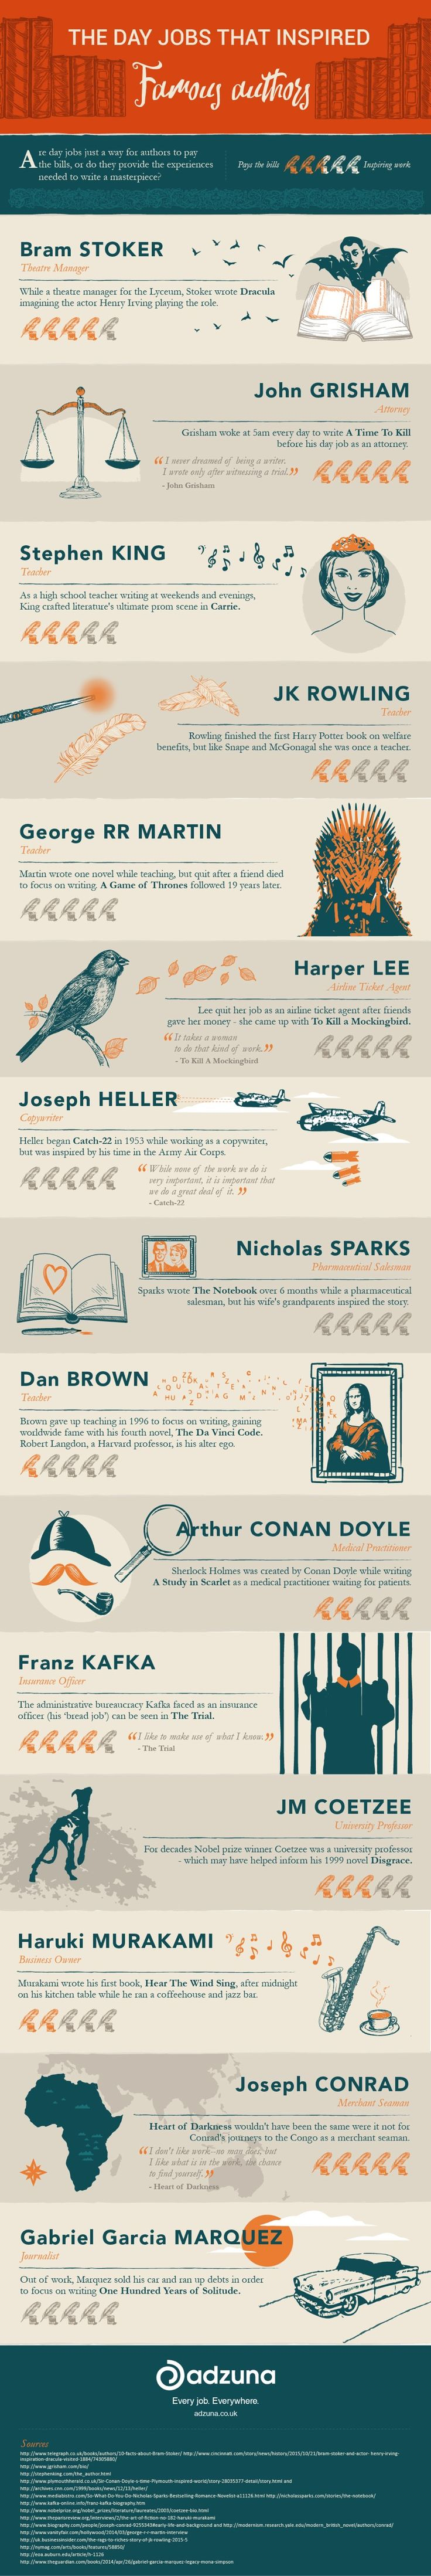 Day jobs of famous writers - J.K. Rowling, Stephen King, George R.R. Martin, or Dan Brown were all teachers. Joseph Heller worked as a copywriter. Gabriel Garcia Marquez was a journalist #infographic